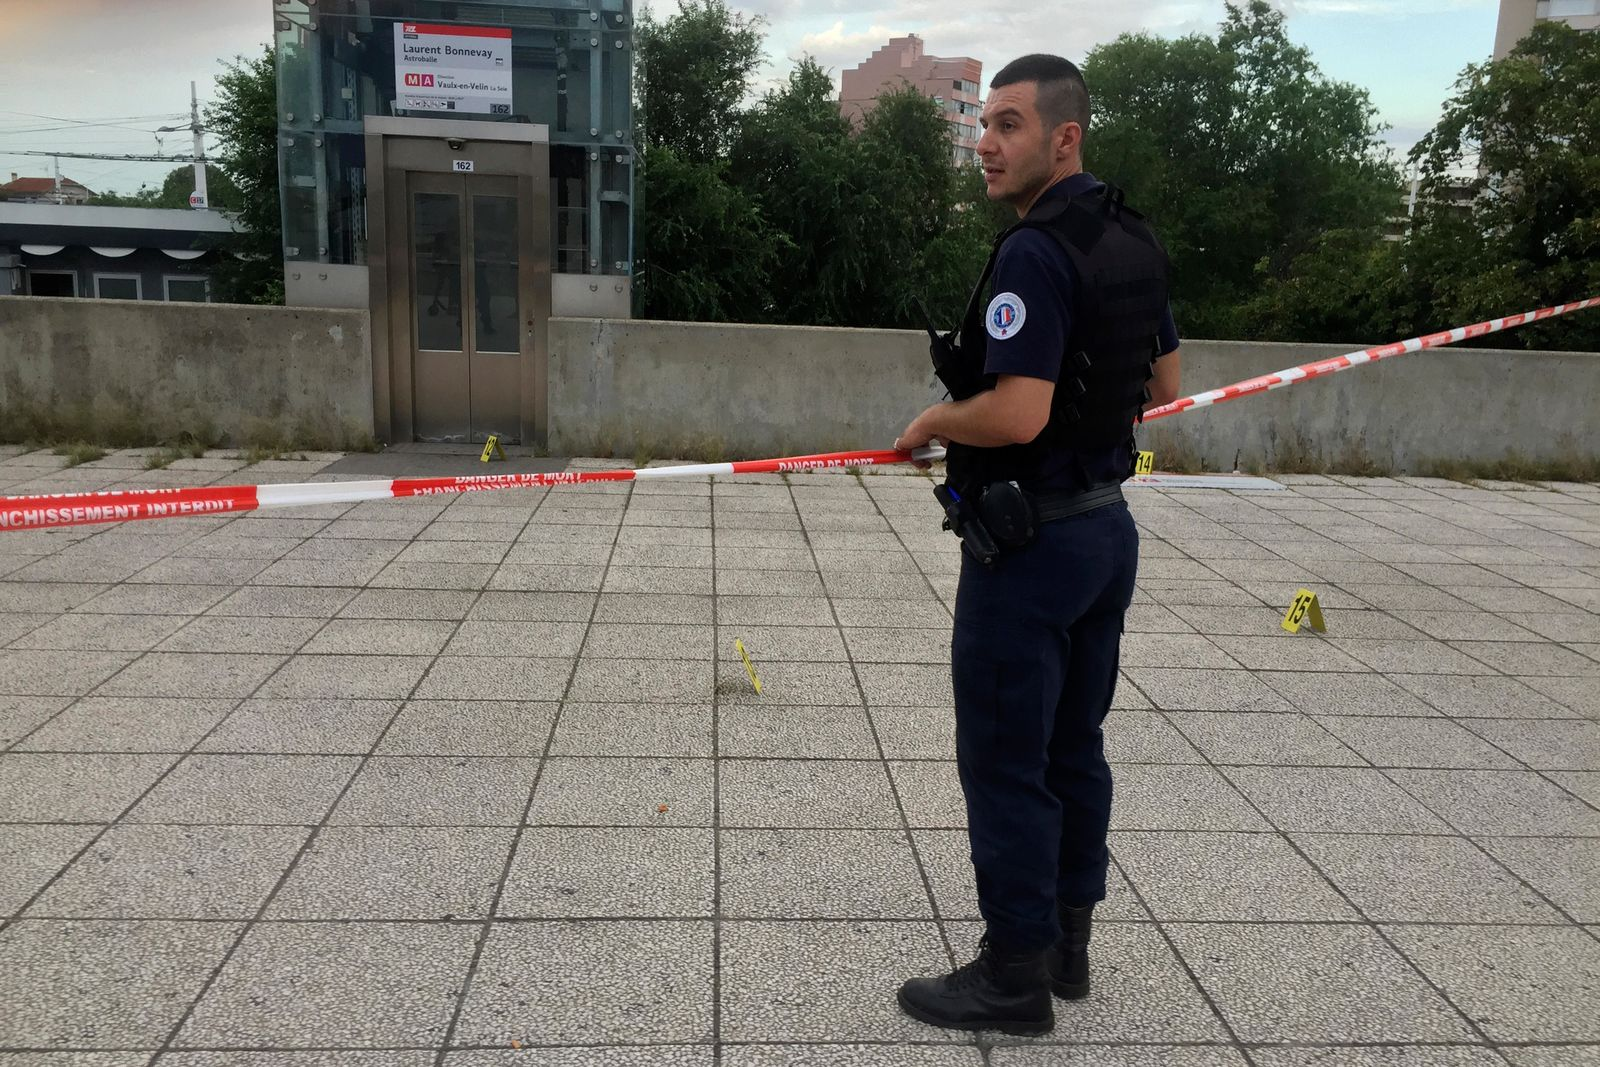 A police officer stands next to the place where an assailant stabbed one person to death and injured nine others has been arrested, Saturday Aug.31, 2019 just outside a subway station in Villeurbanne, outside Lyon, central France. The reason for the attack is unclear. (AP Photo/Nicolas Vaux-Montagny)